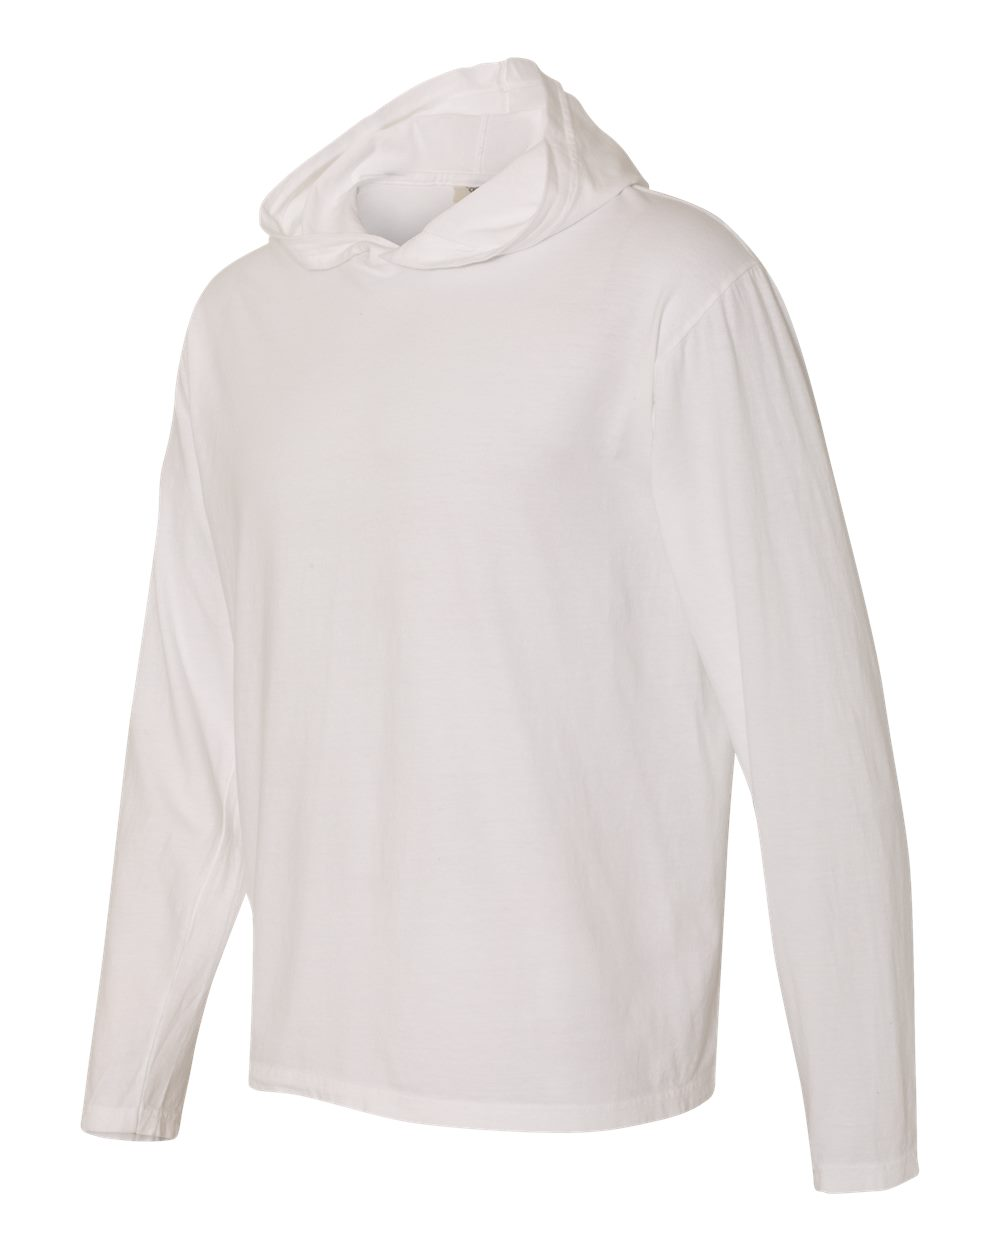 Comfort Colors 4900 - Garment Dyed Hooded Long Sleeve ...